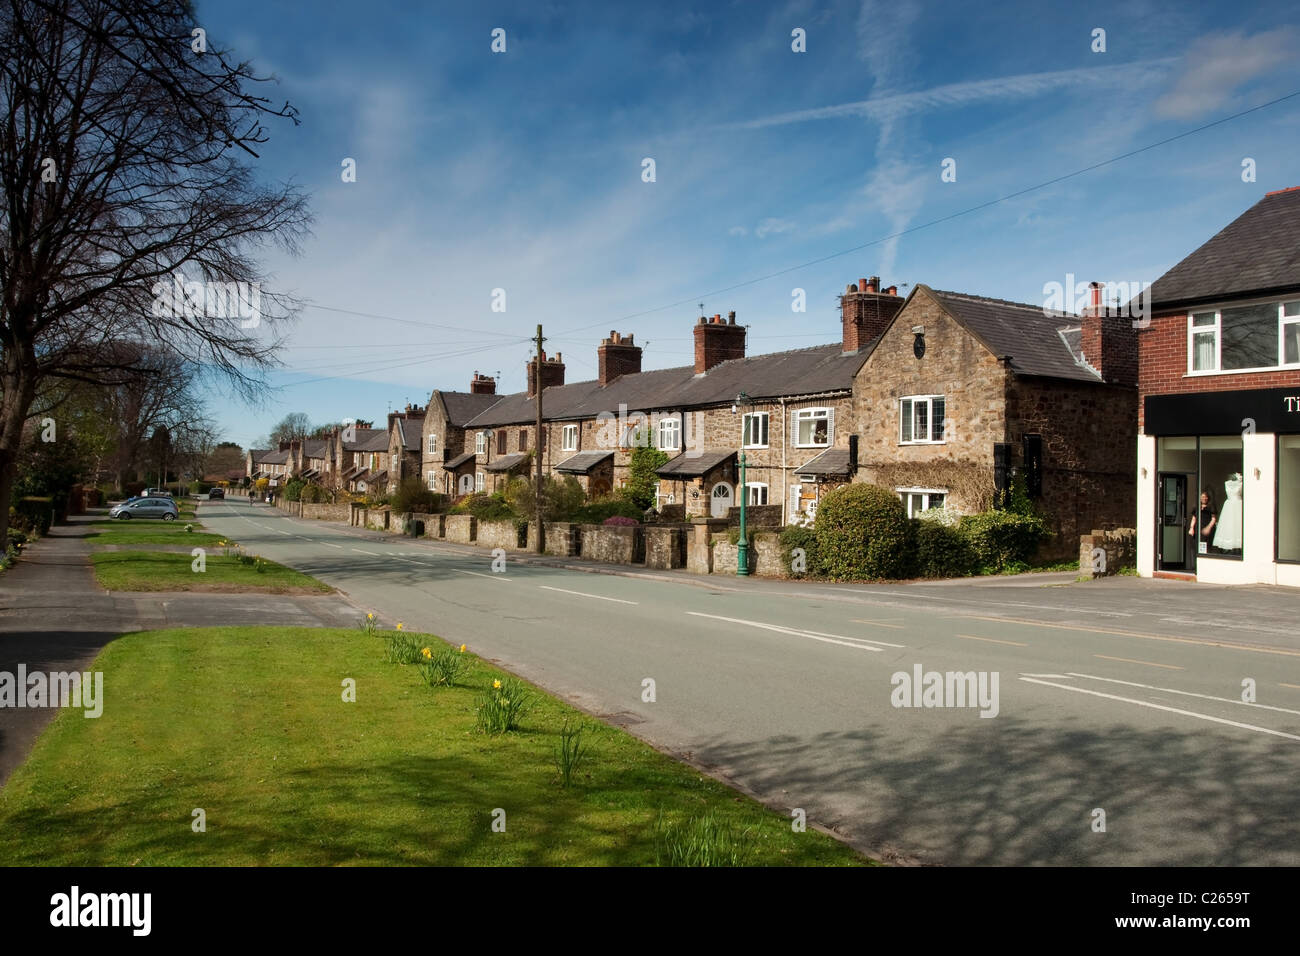 Old mining cottages in Poynton, Cheshire. - Stock Image